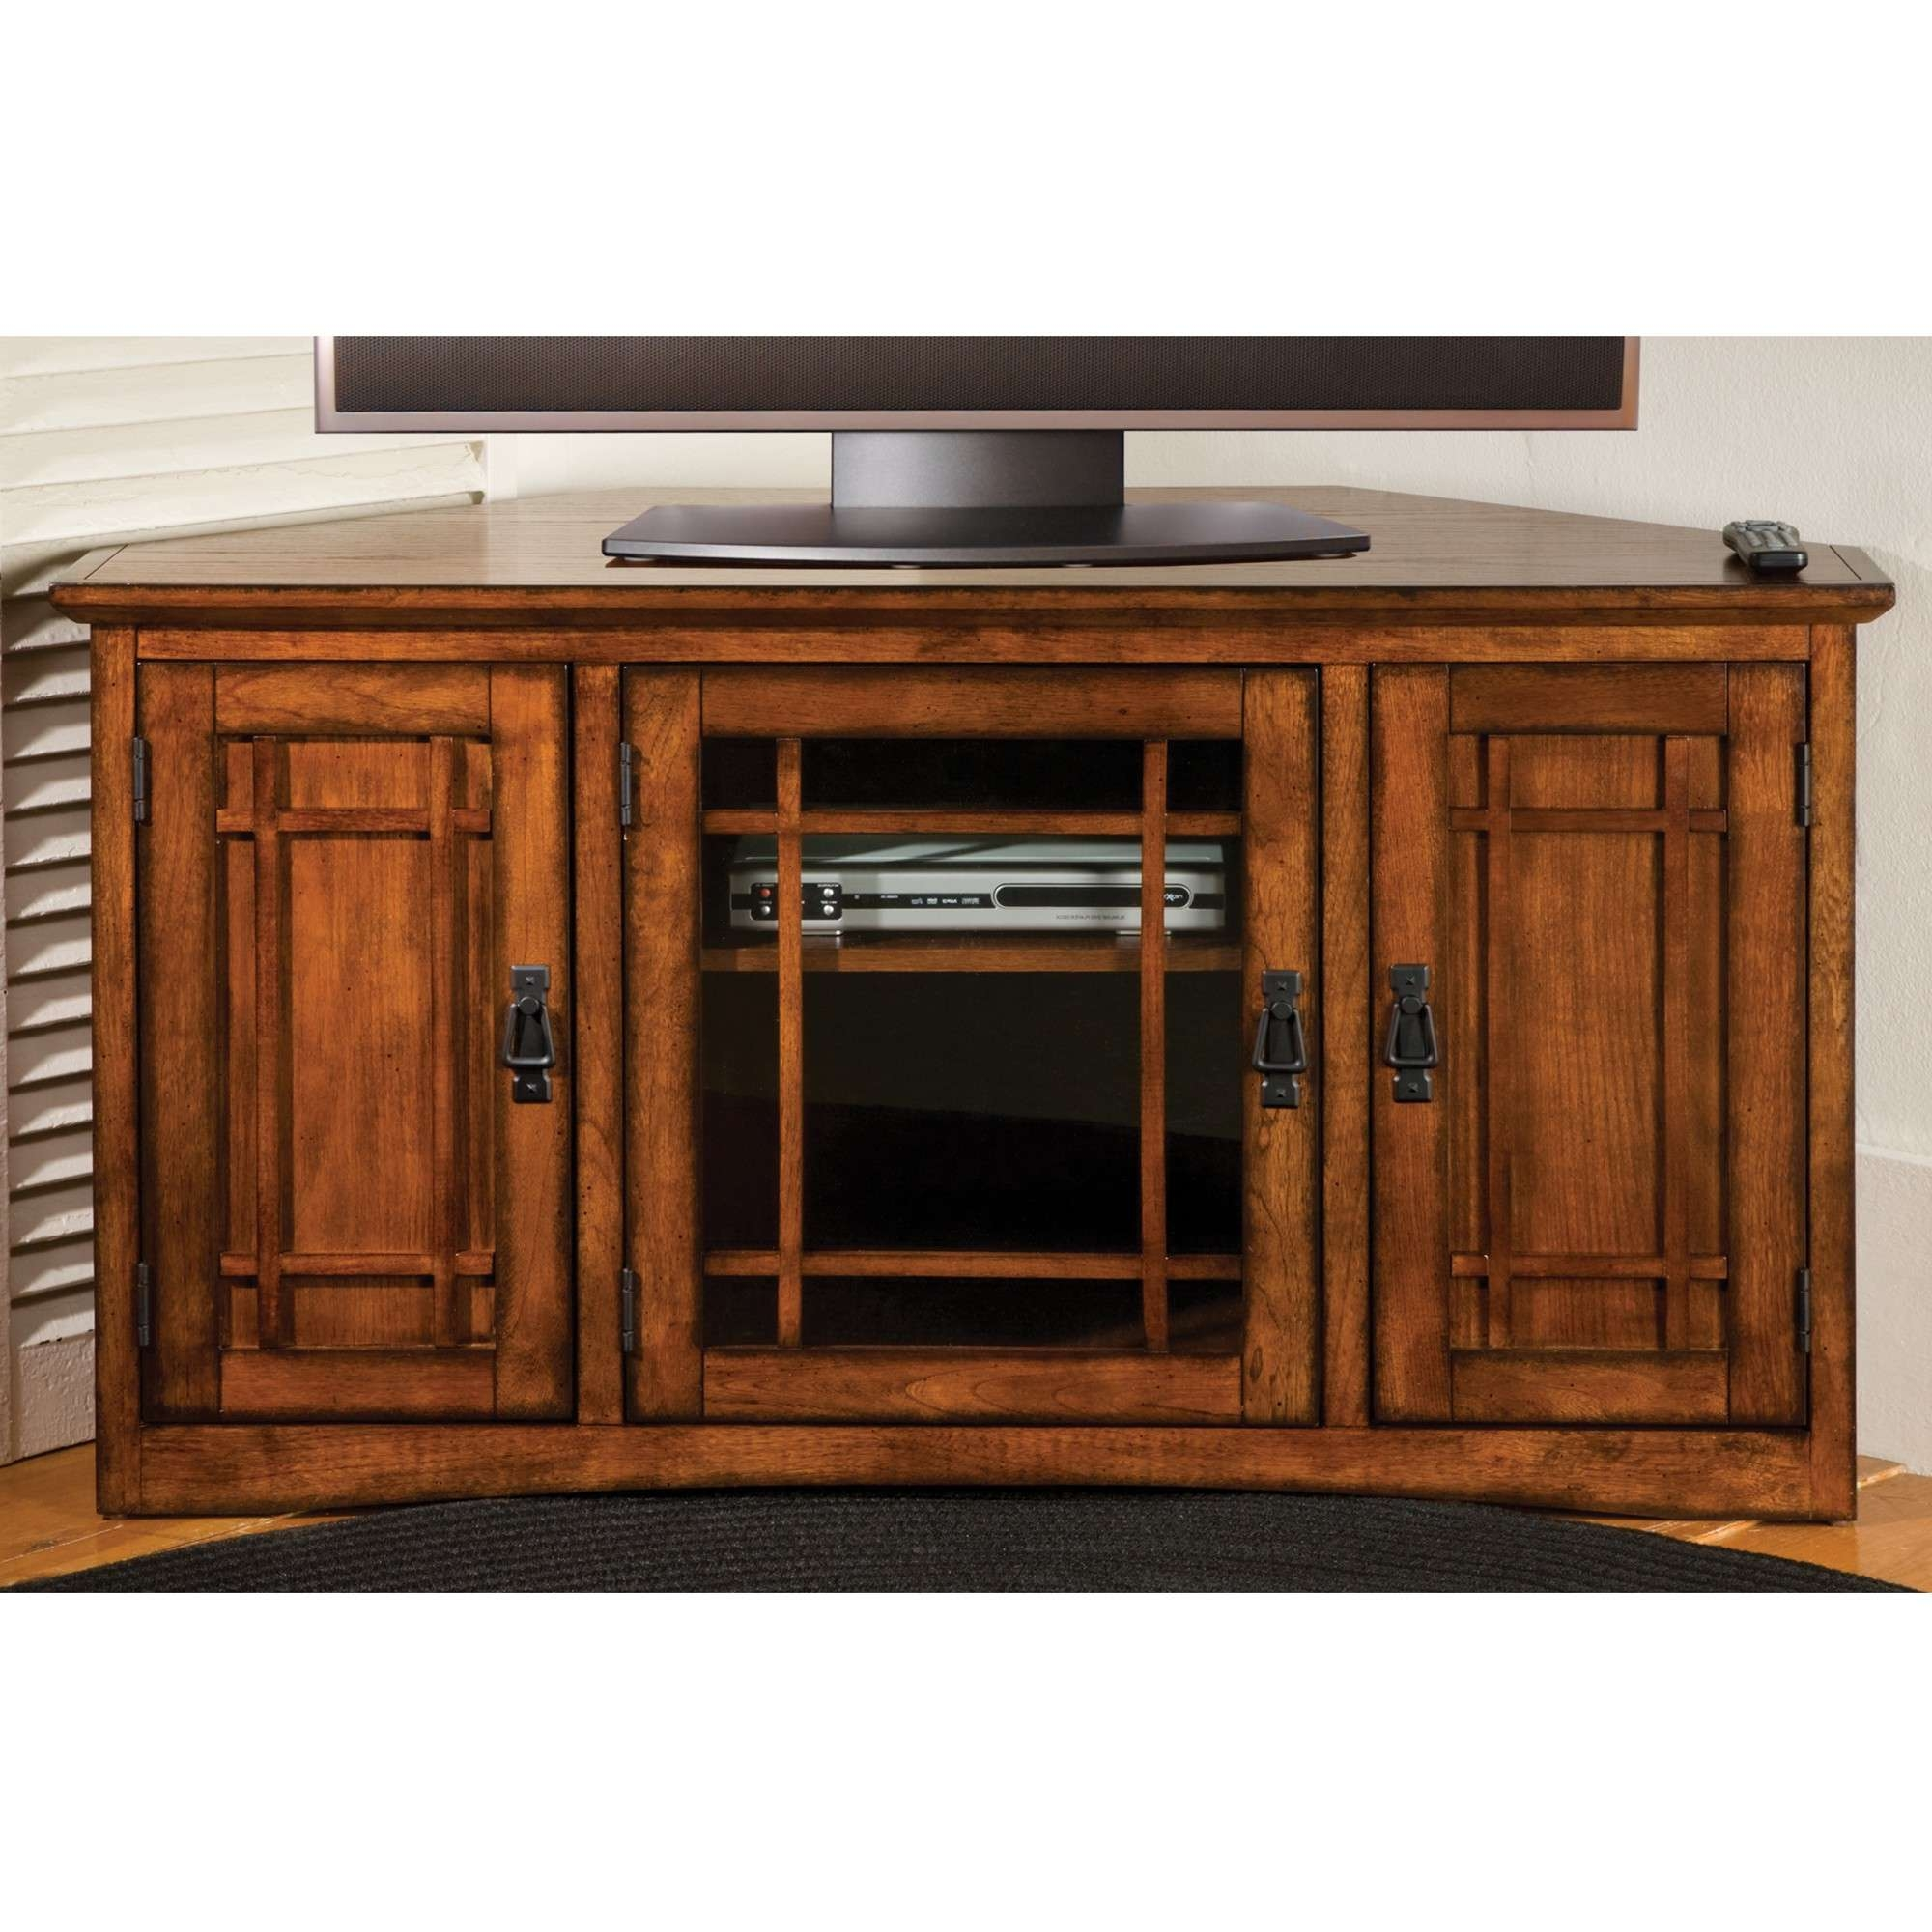 Mission Corner Tv Cabinet | Sturbridge Yankee Workshop Regarding Small Corner Tv Cabinets (View 11 of 20)